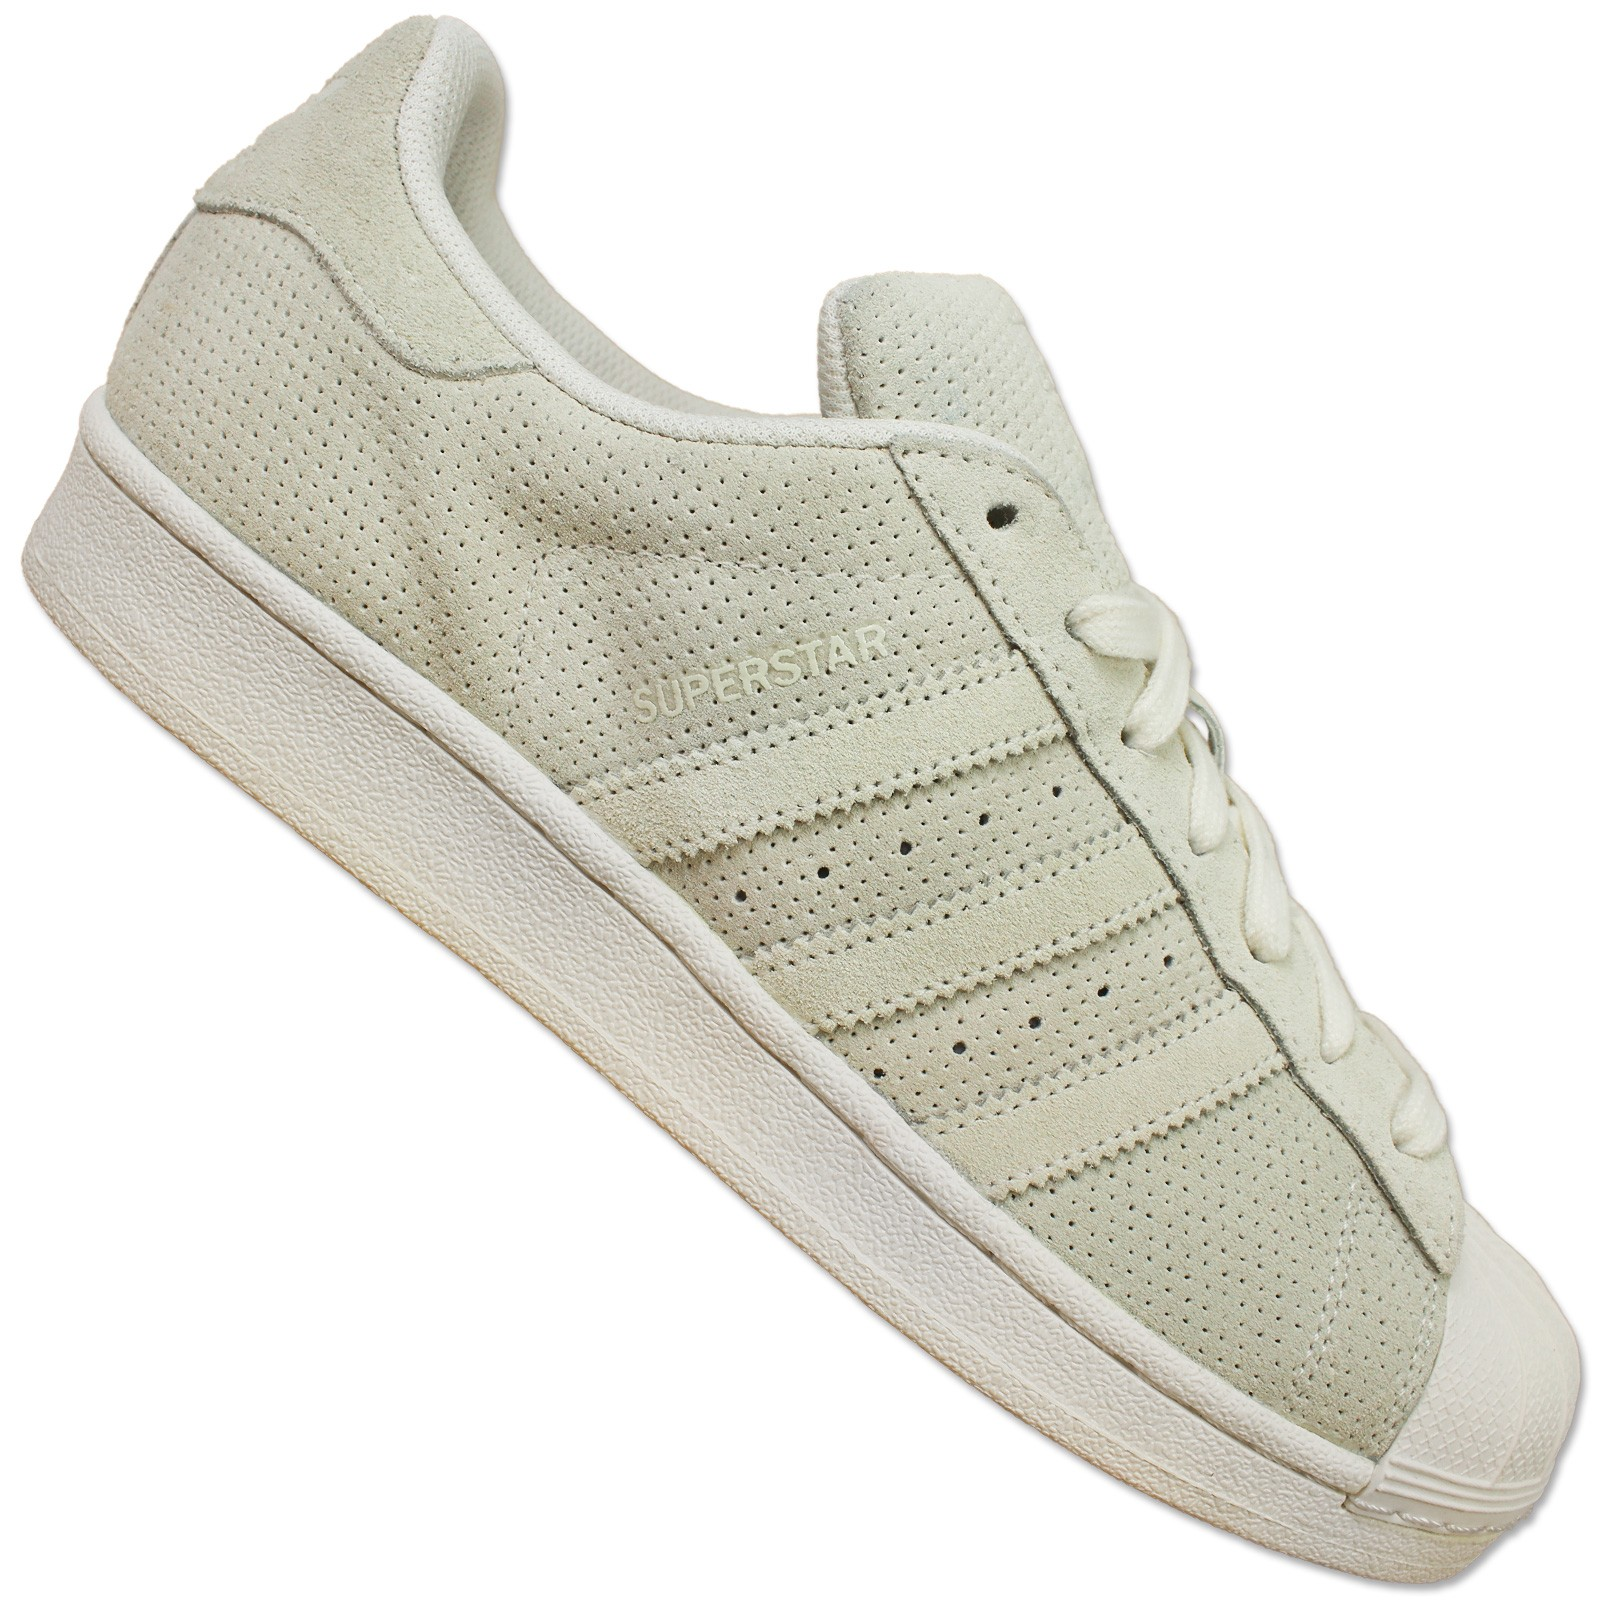 Détails sur Adidas Originals Superstar II S79477 Chaussures Baskets Cuir Gris Perforé